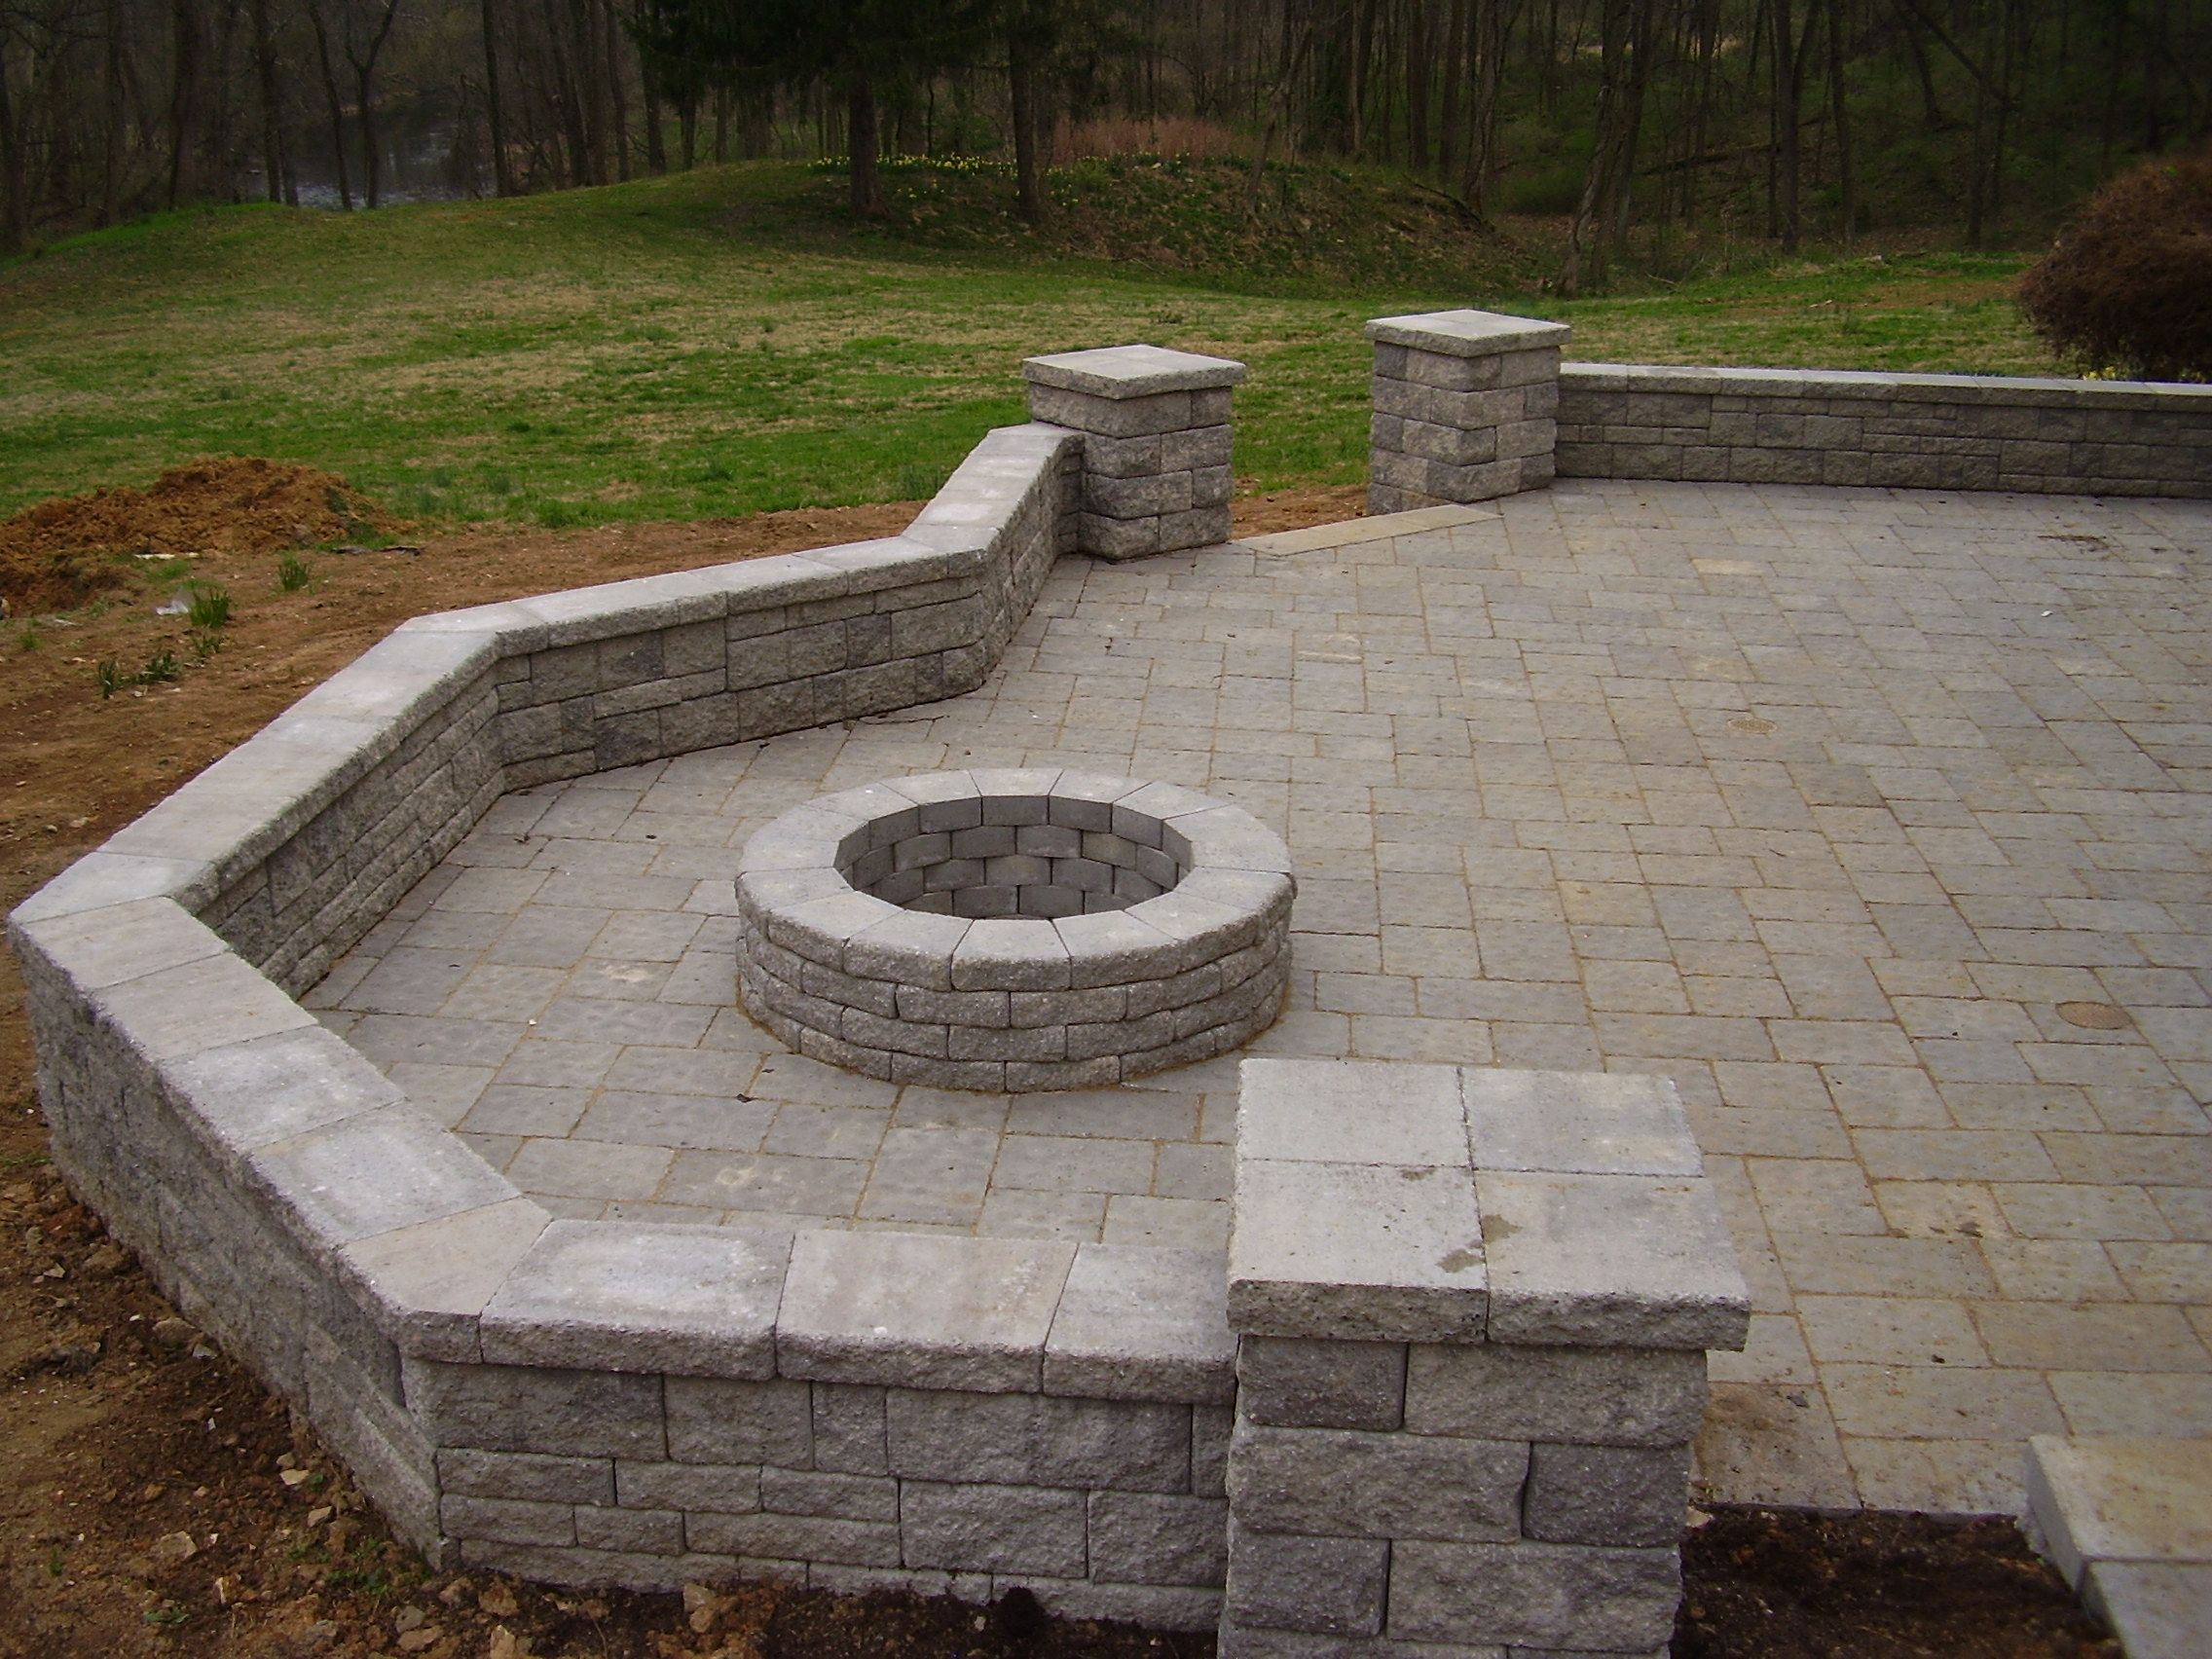 Stone fire pit designs patio traditional with artistic hardscape - Patio With Seat Wall Columns And Fire Pit Landscape Designspatio